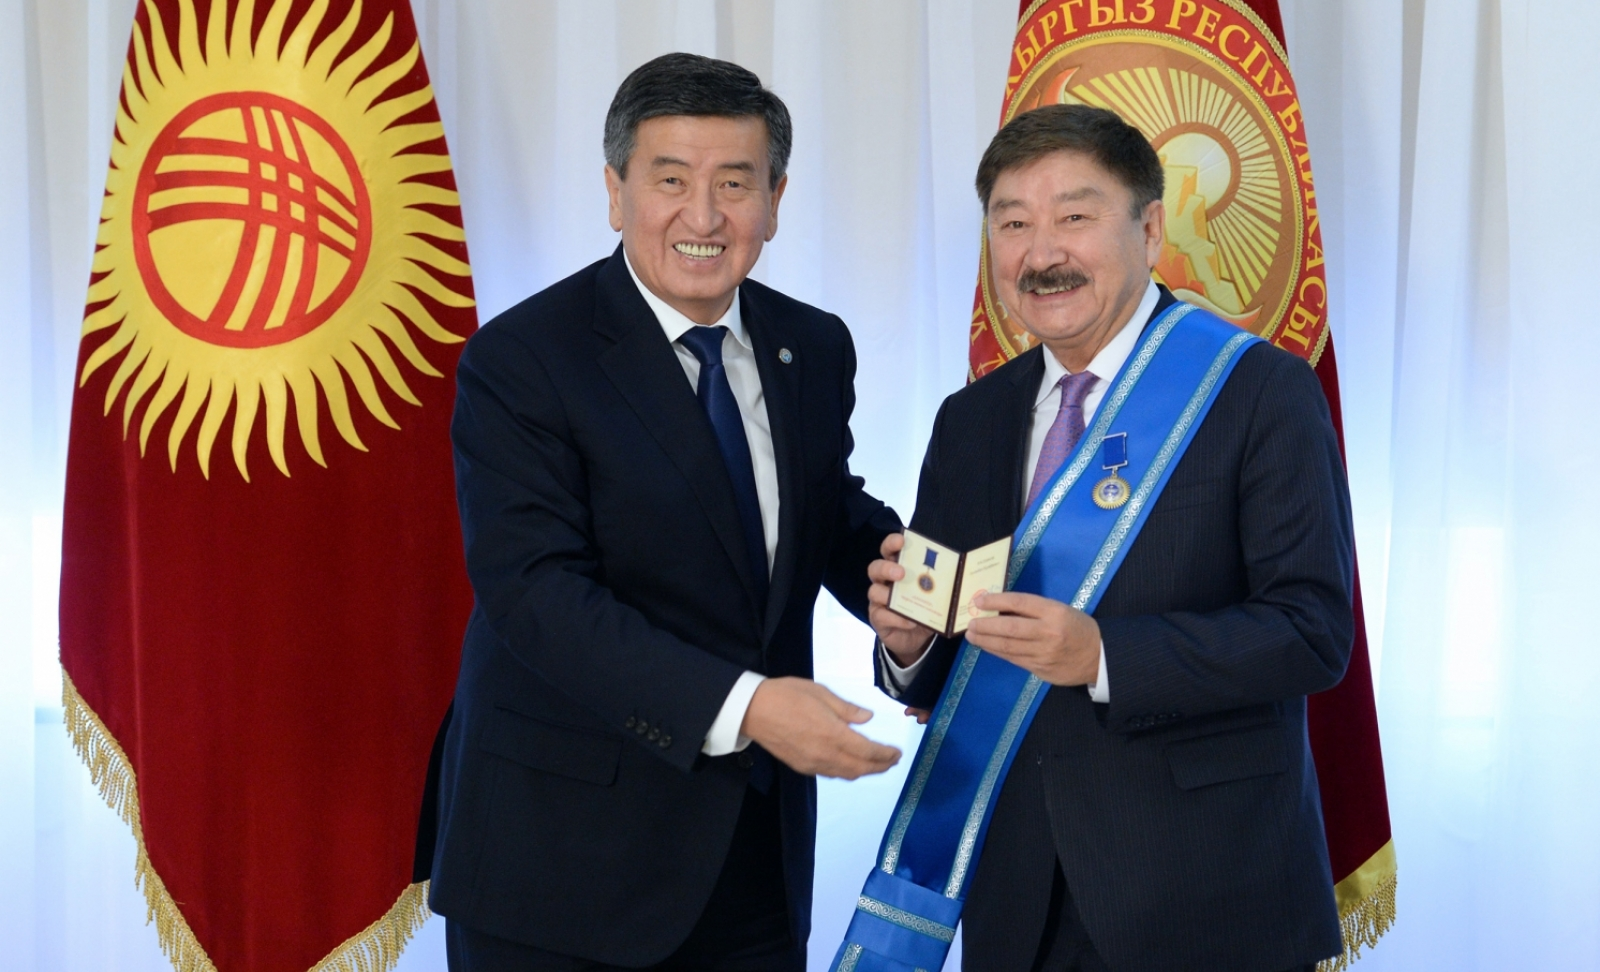 Order of Danaker extended to Dusen Kasseinov by the President of the Kyrgyz Republic Ceenbekov